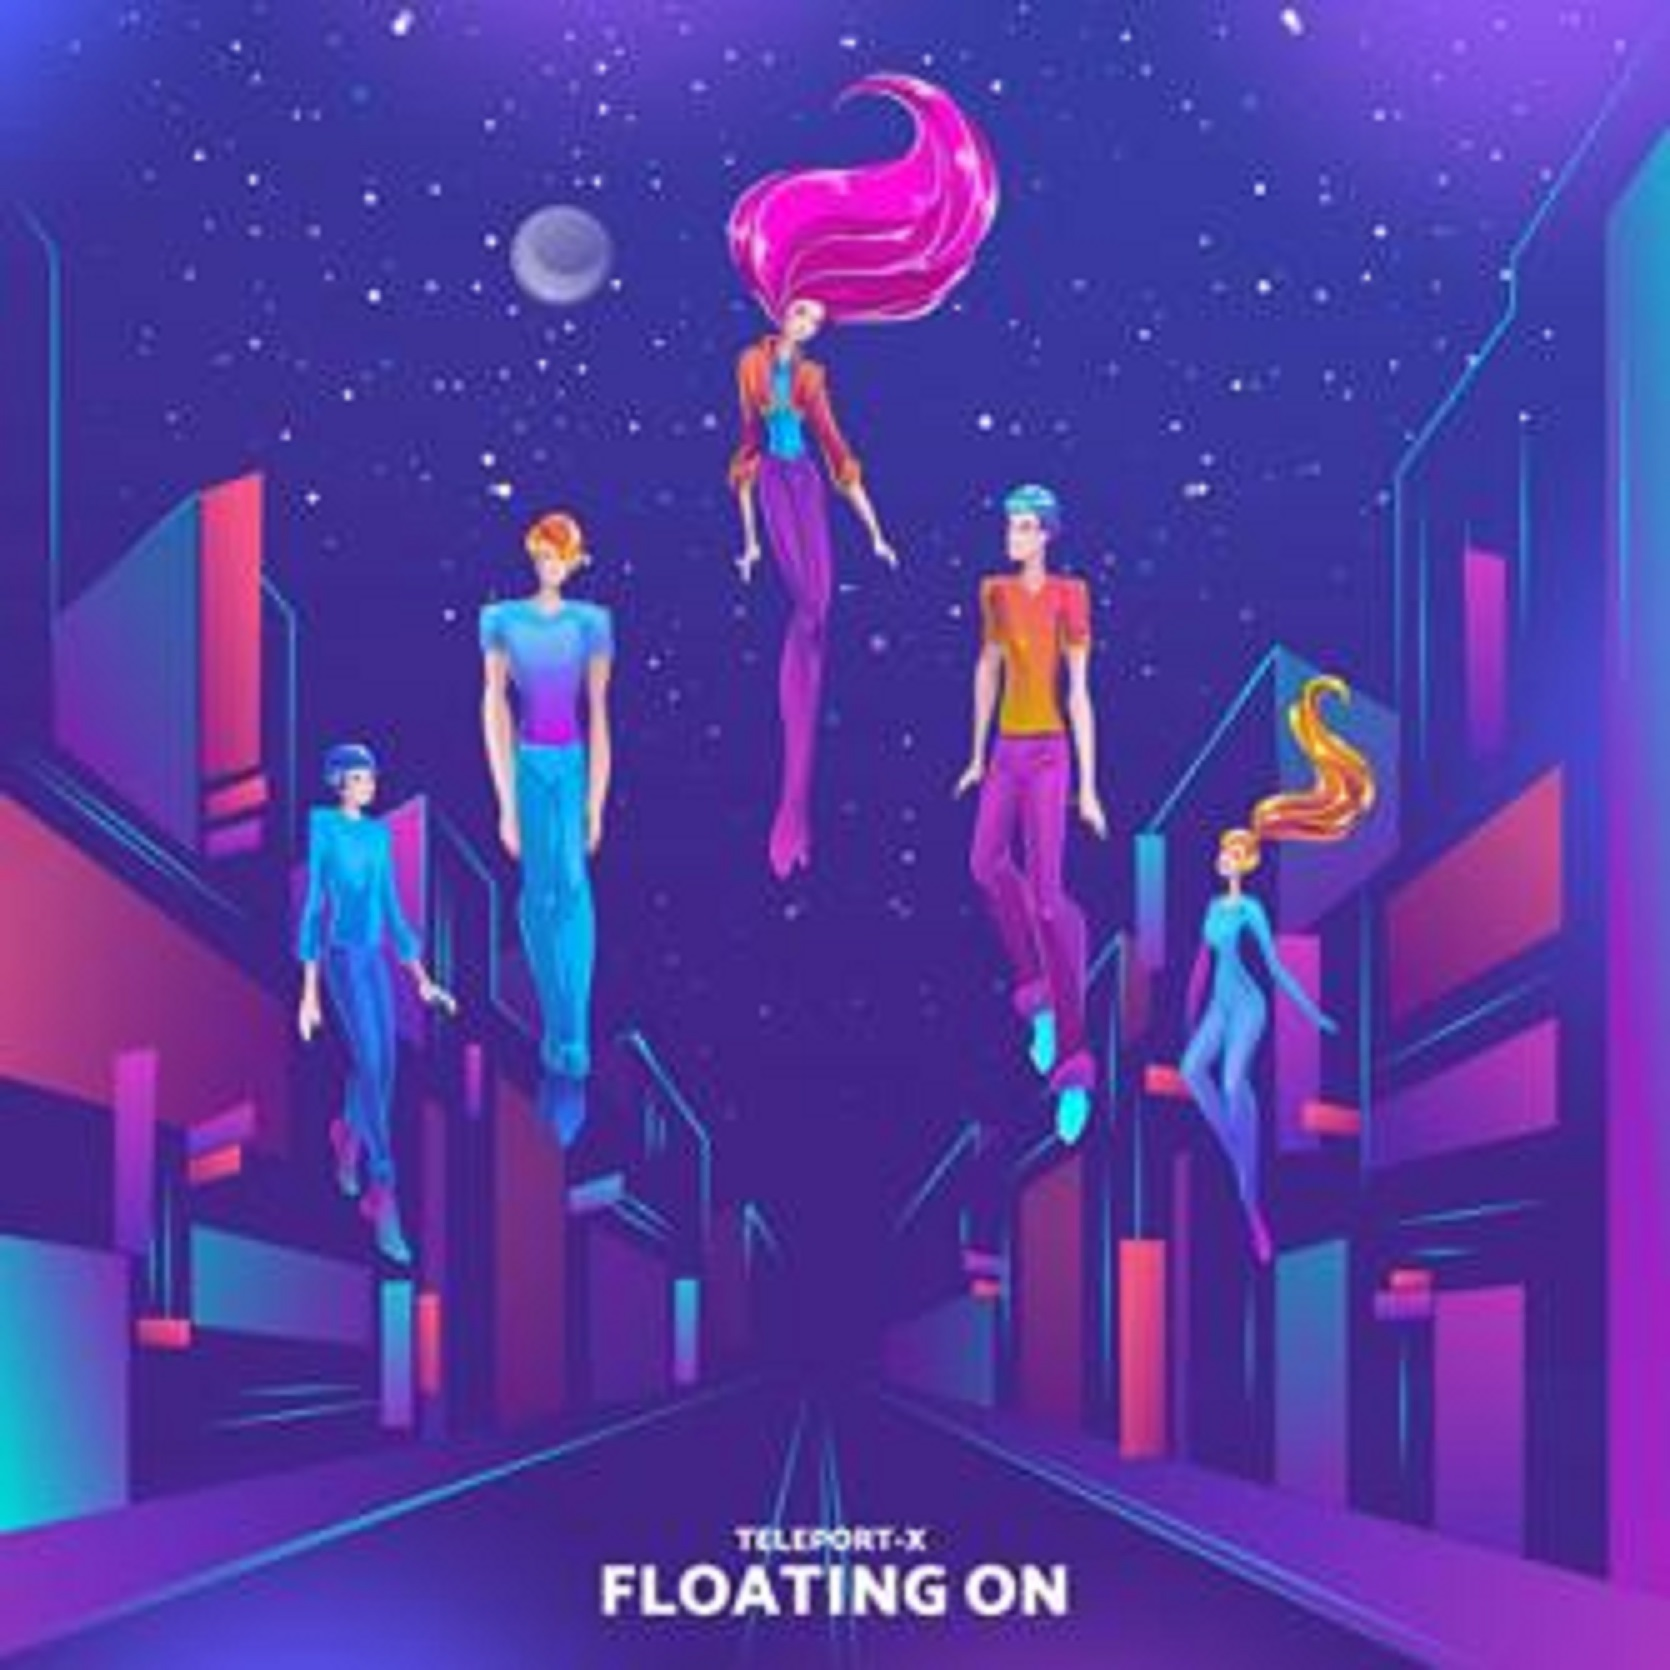 Teleport-X - Floating On